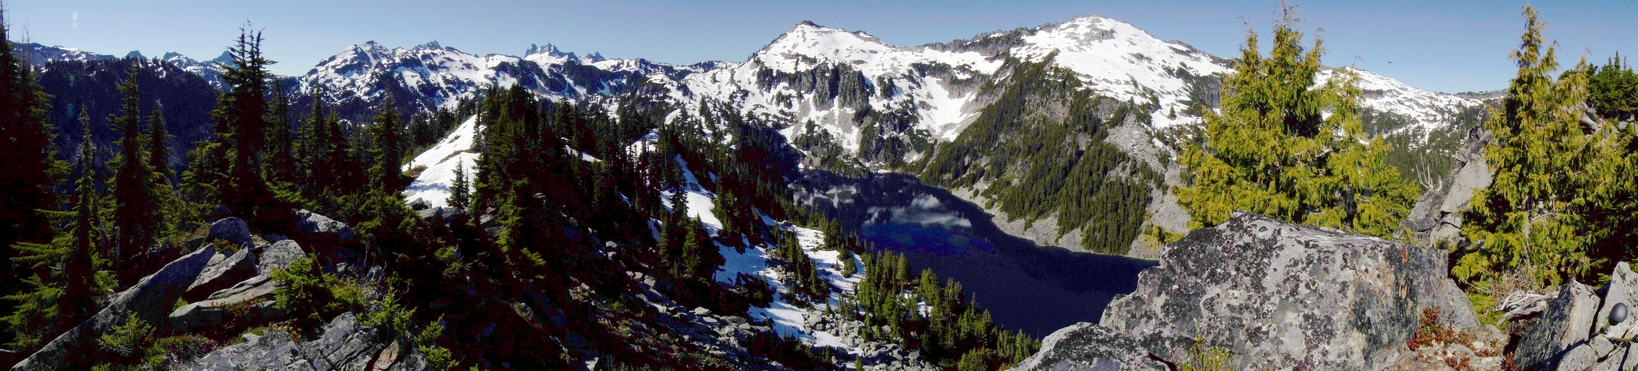 big heart lake panorama from point 5359 in alpine lakes wilderness, wa